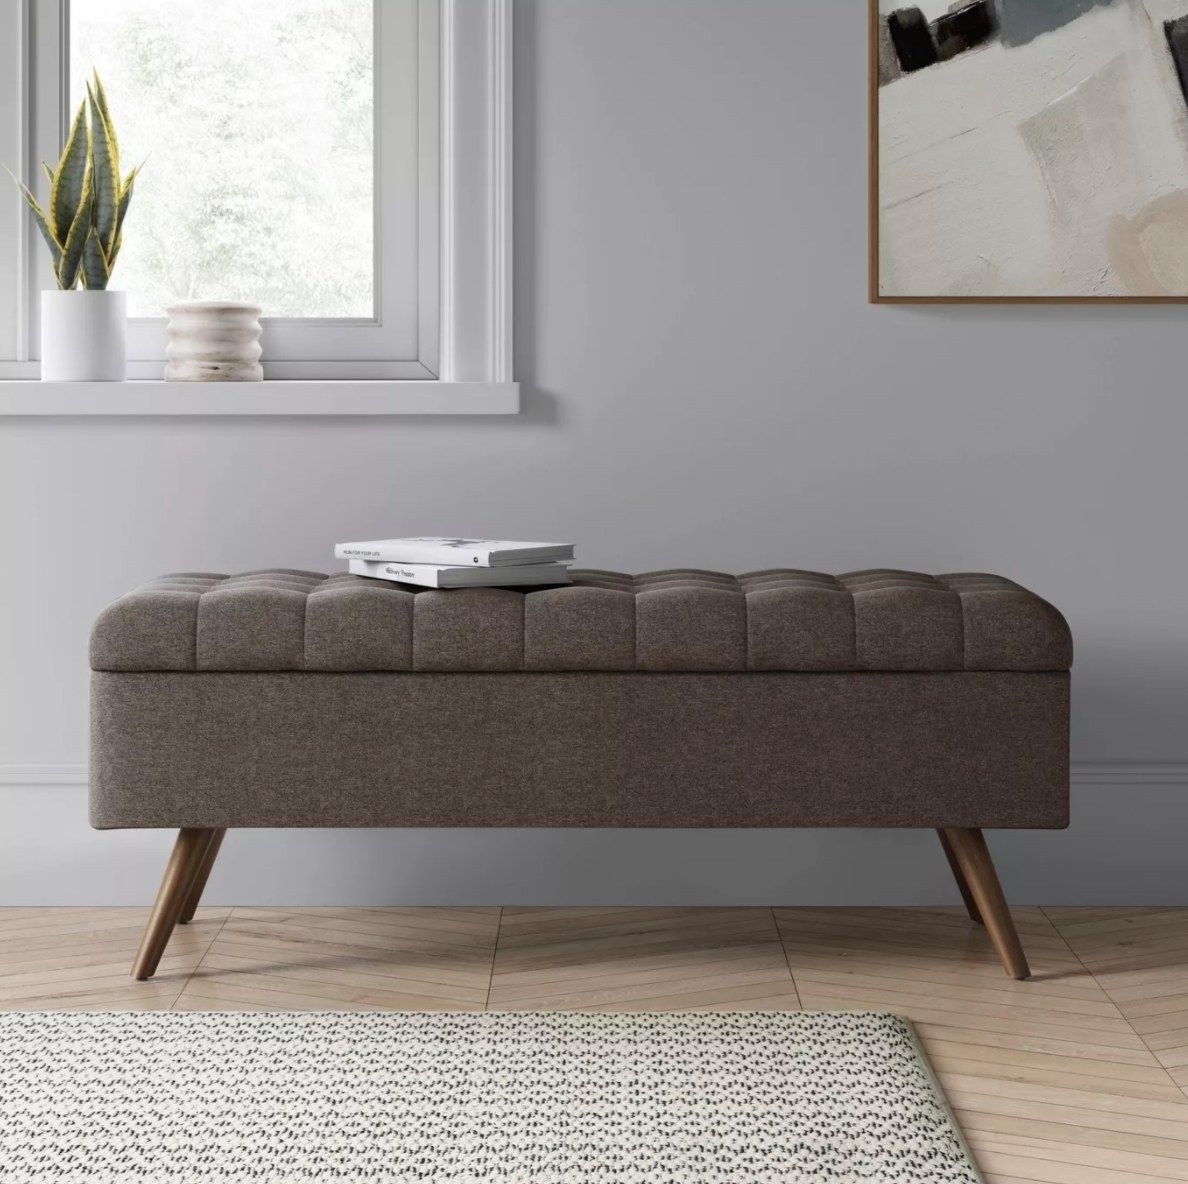 A Tufted Storage Bench That Doubles As Seating And A Place To Store Your Blankets Or Whatever Really The Mcm Design Features Eye Catching Wooden Legs And Du In 2020 Tufted Storage